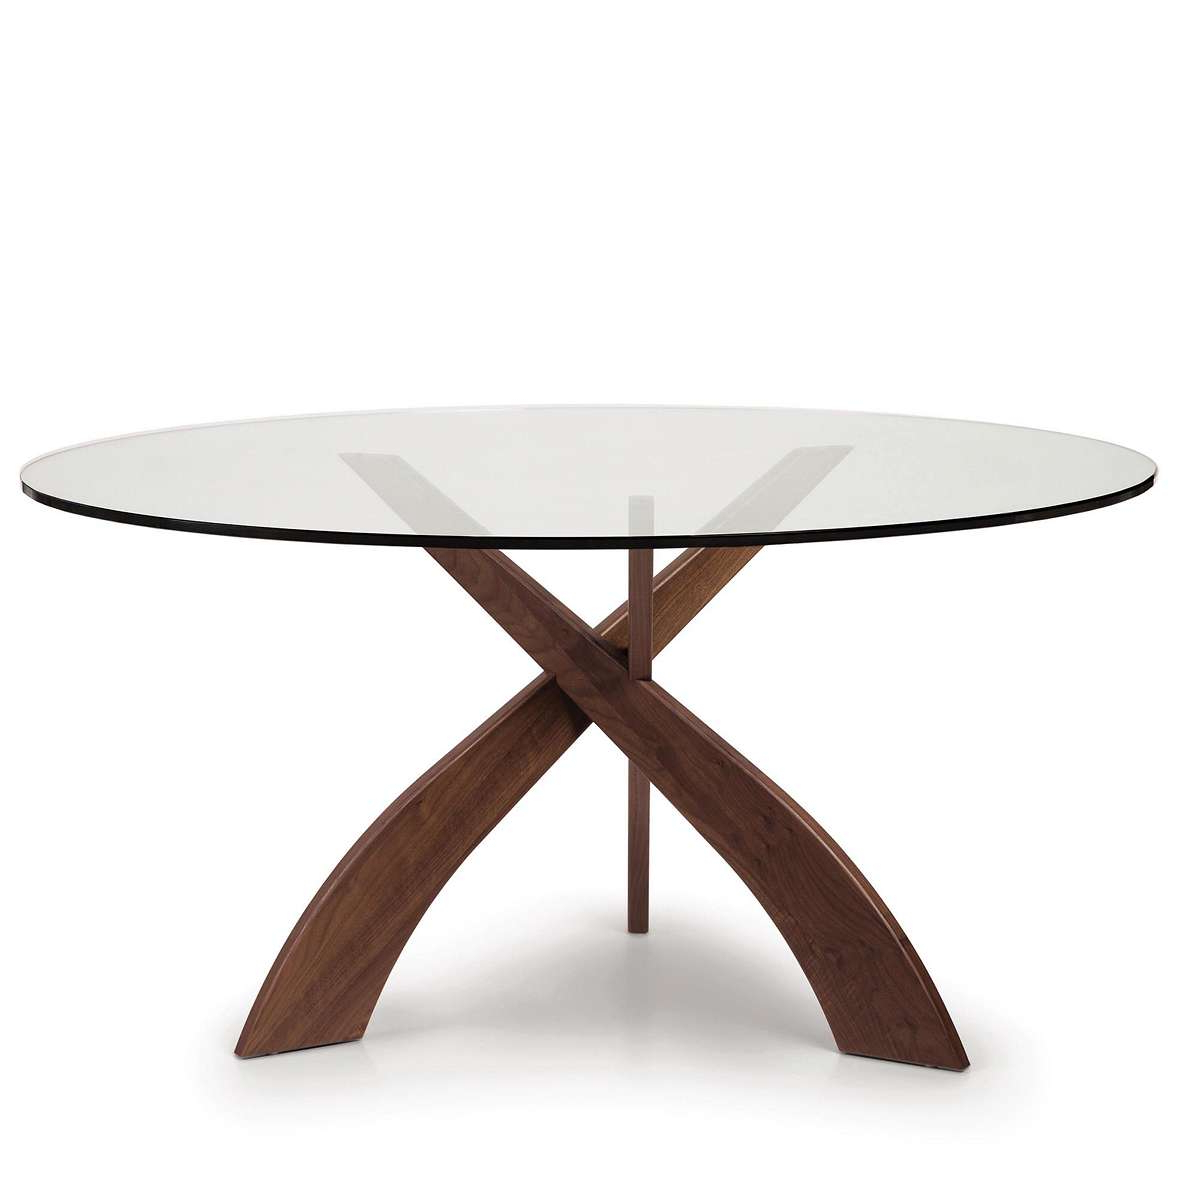 Newest Entwine Round Glass Top Dining Table For Round Glass Top Dining Tables (Gallery 14 of 30)